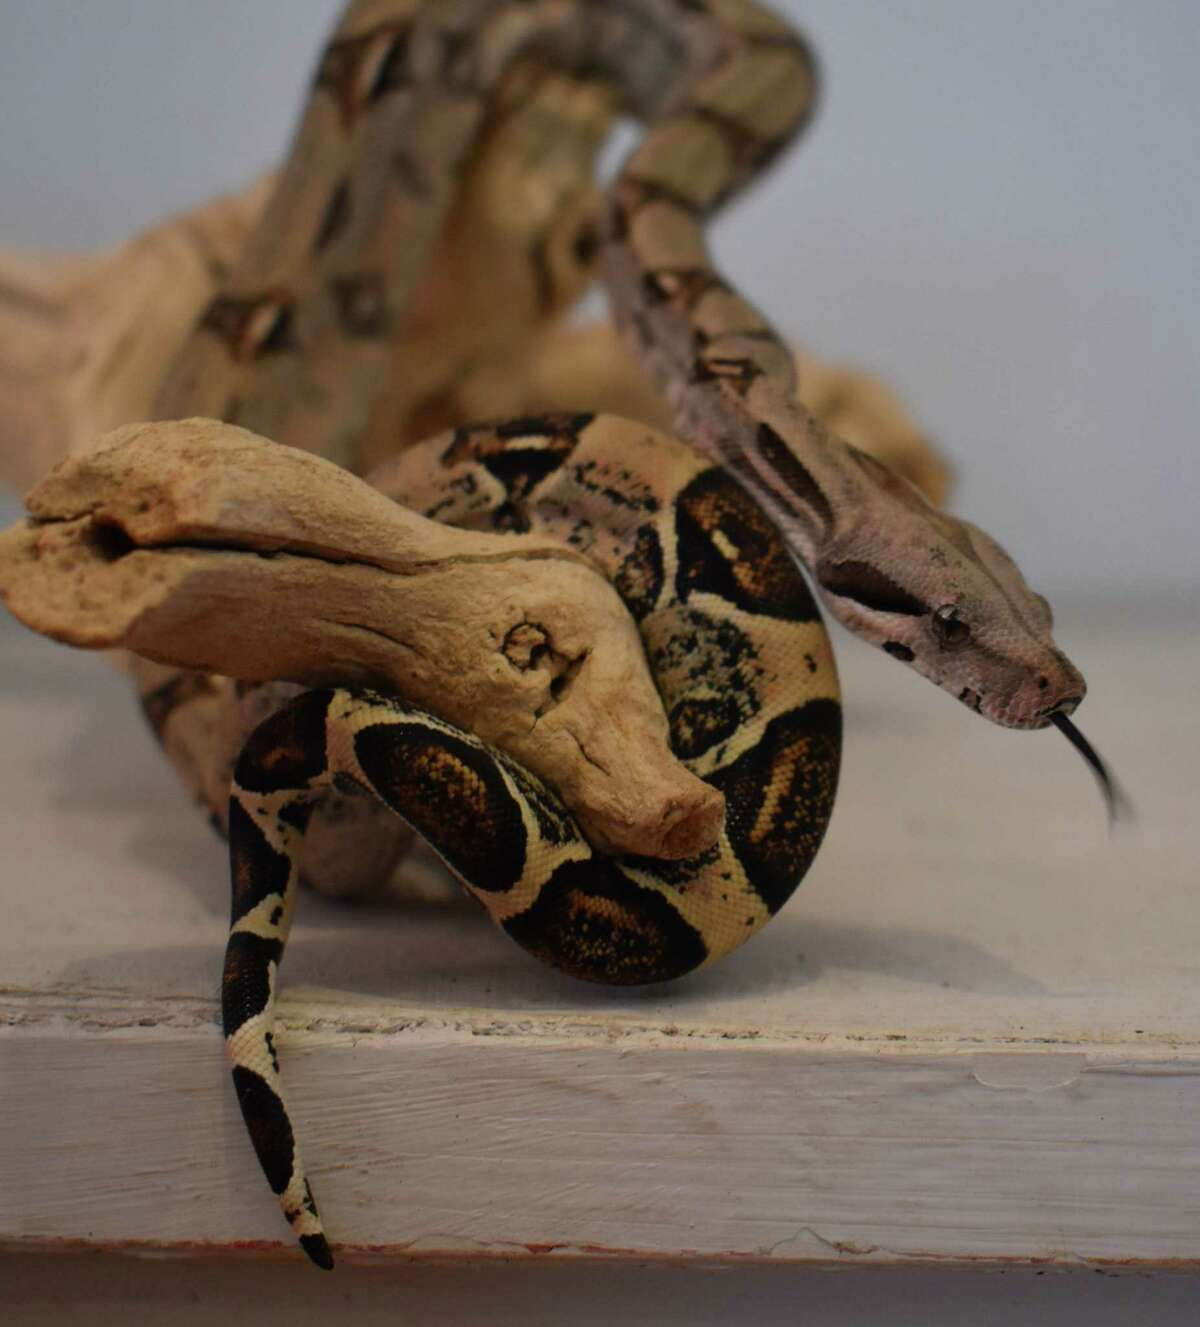 The Colombian Red-Tailed Boa Constrictor acquired by Woodcock Nature Center is noted for the red